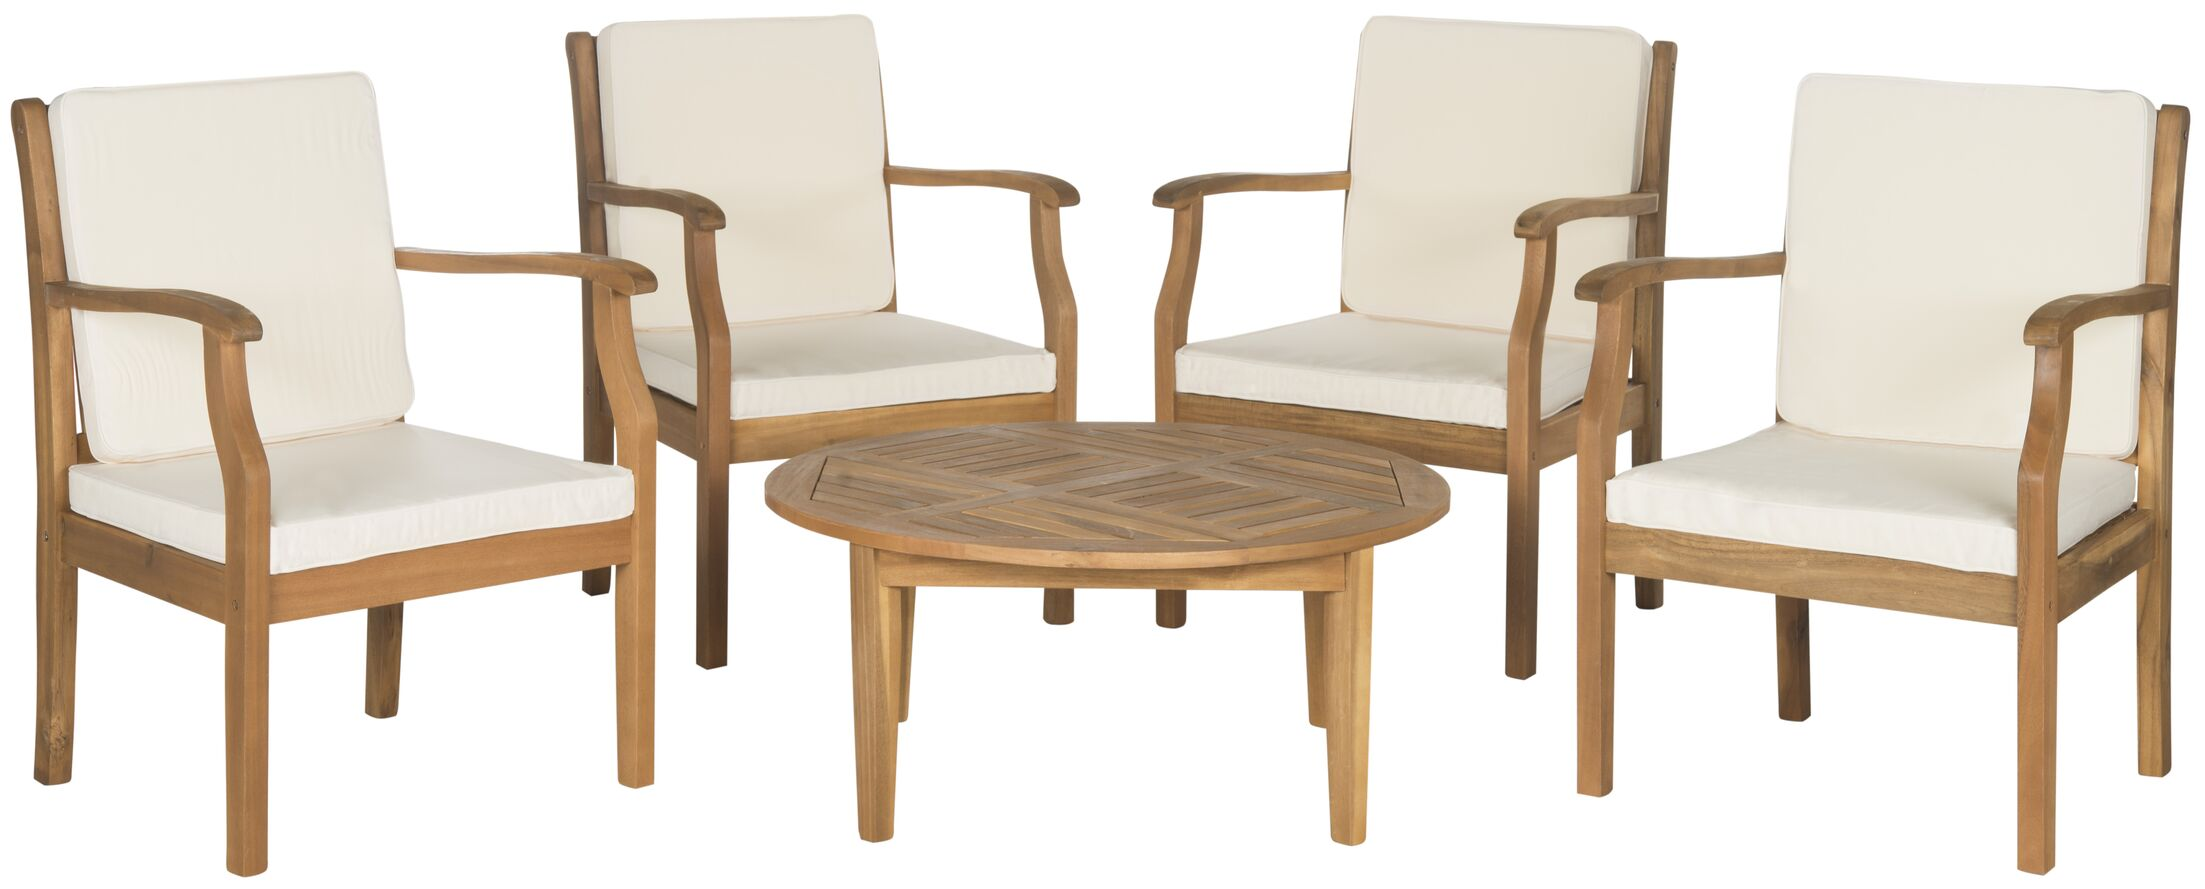 Colfax 5 Piece Conversation Set with Cushions Color: Teak Brown